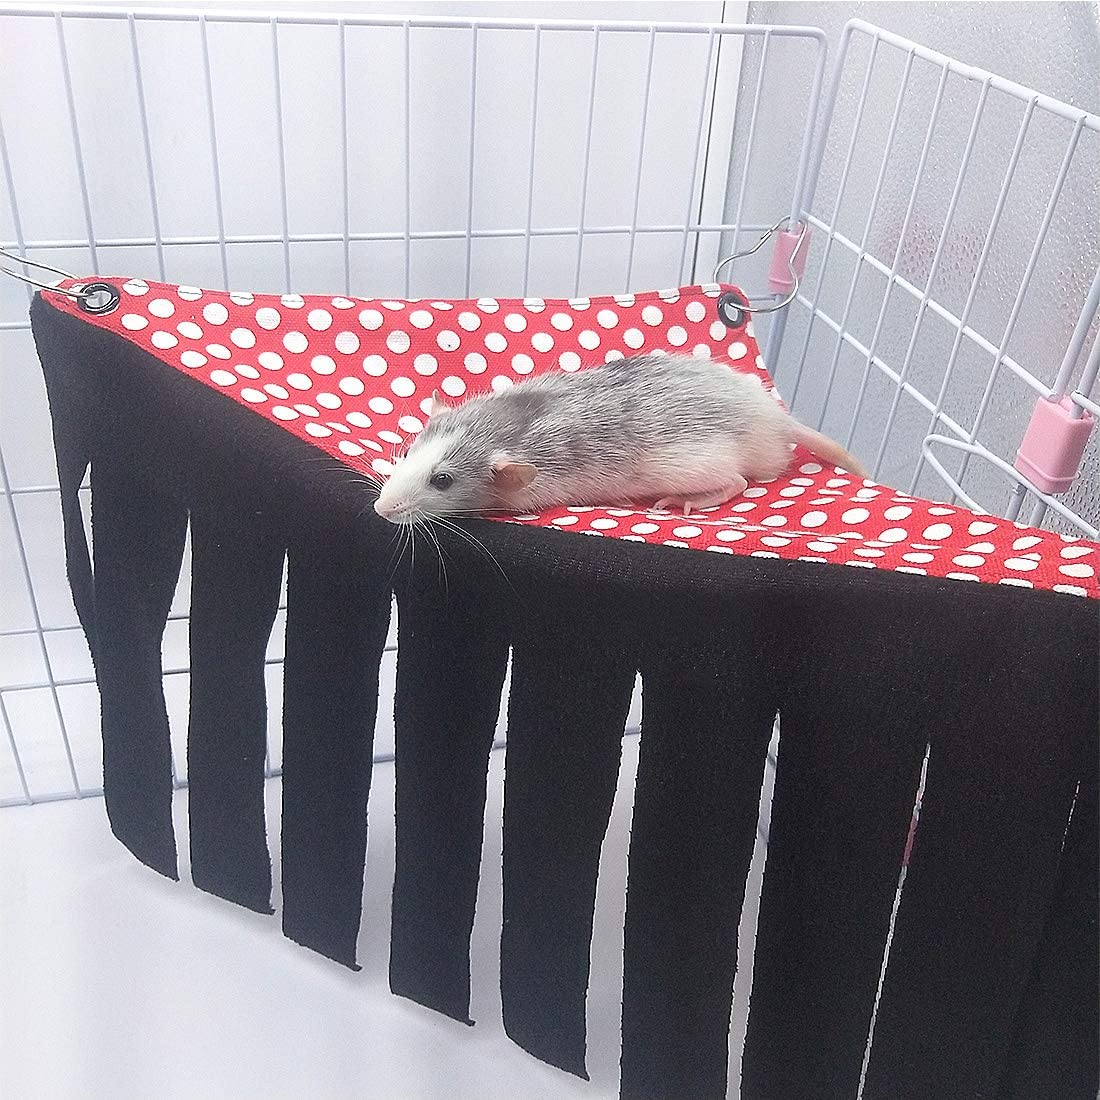 Guinea Pig Hideout Ferret Corner Fleece Forest Hideaway Hamster Hammock Sleeper Chinchilla Cage Toy House Hanging Bed for Gerbil Dwarf Rabbit Hedgehog /& Other Small Animals